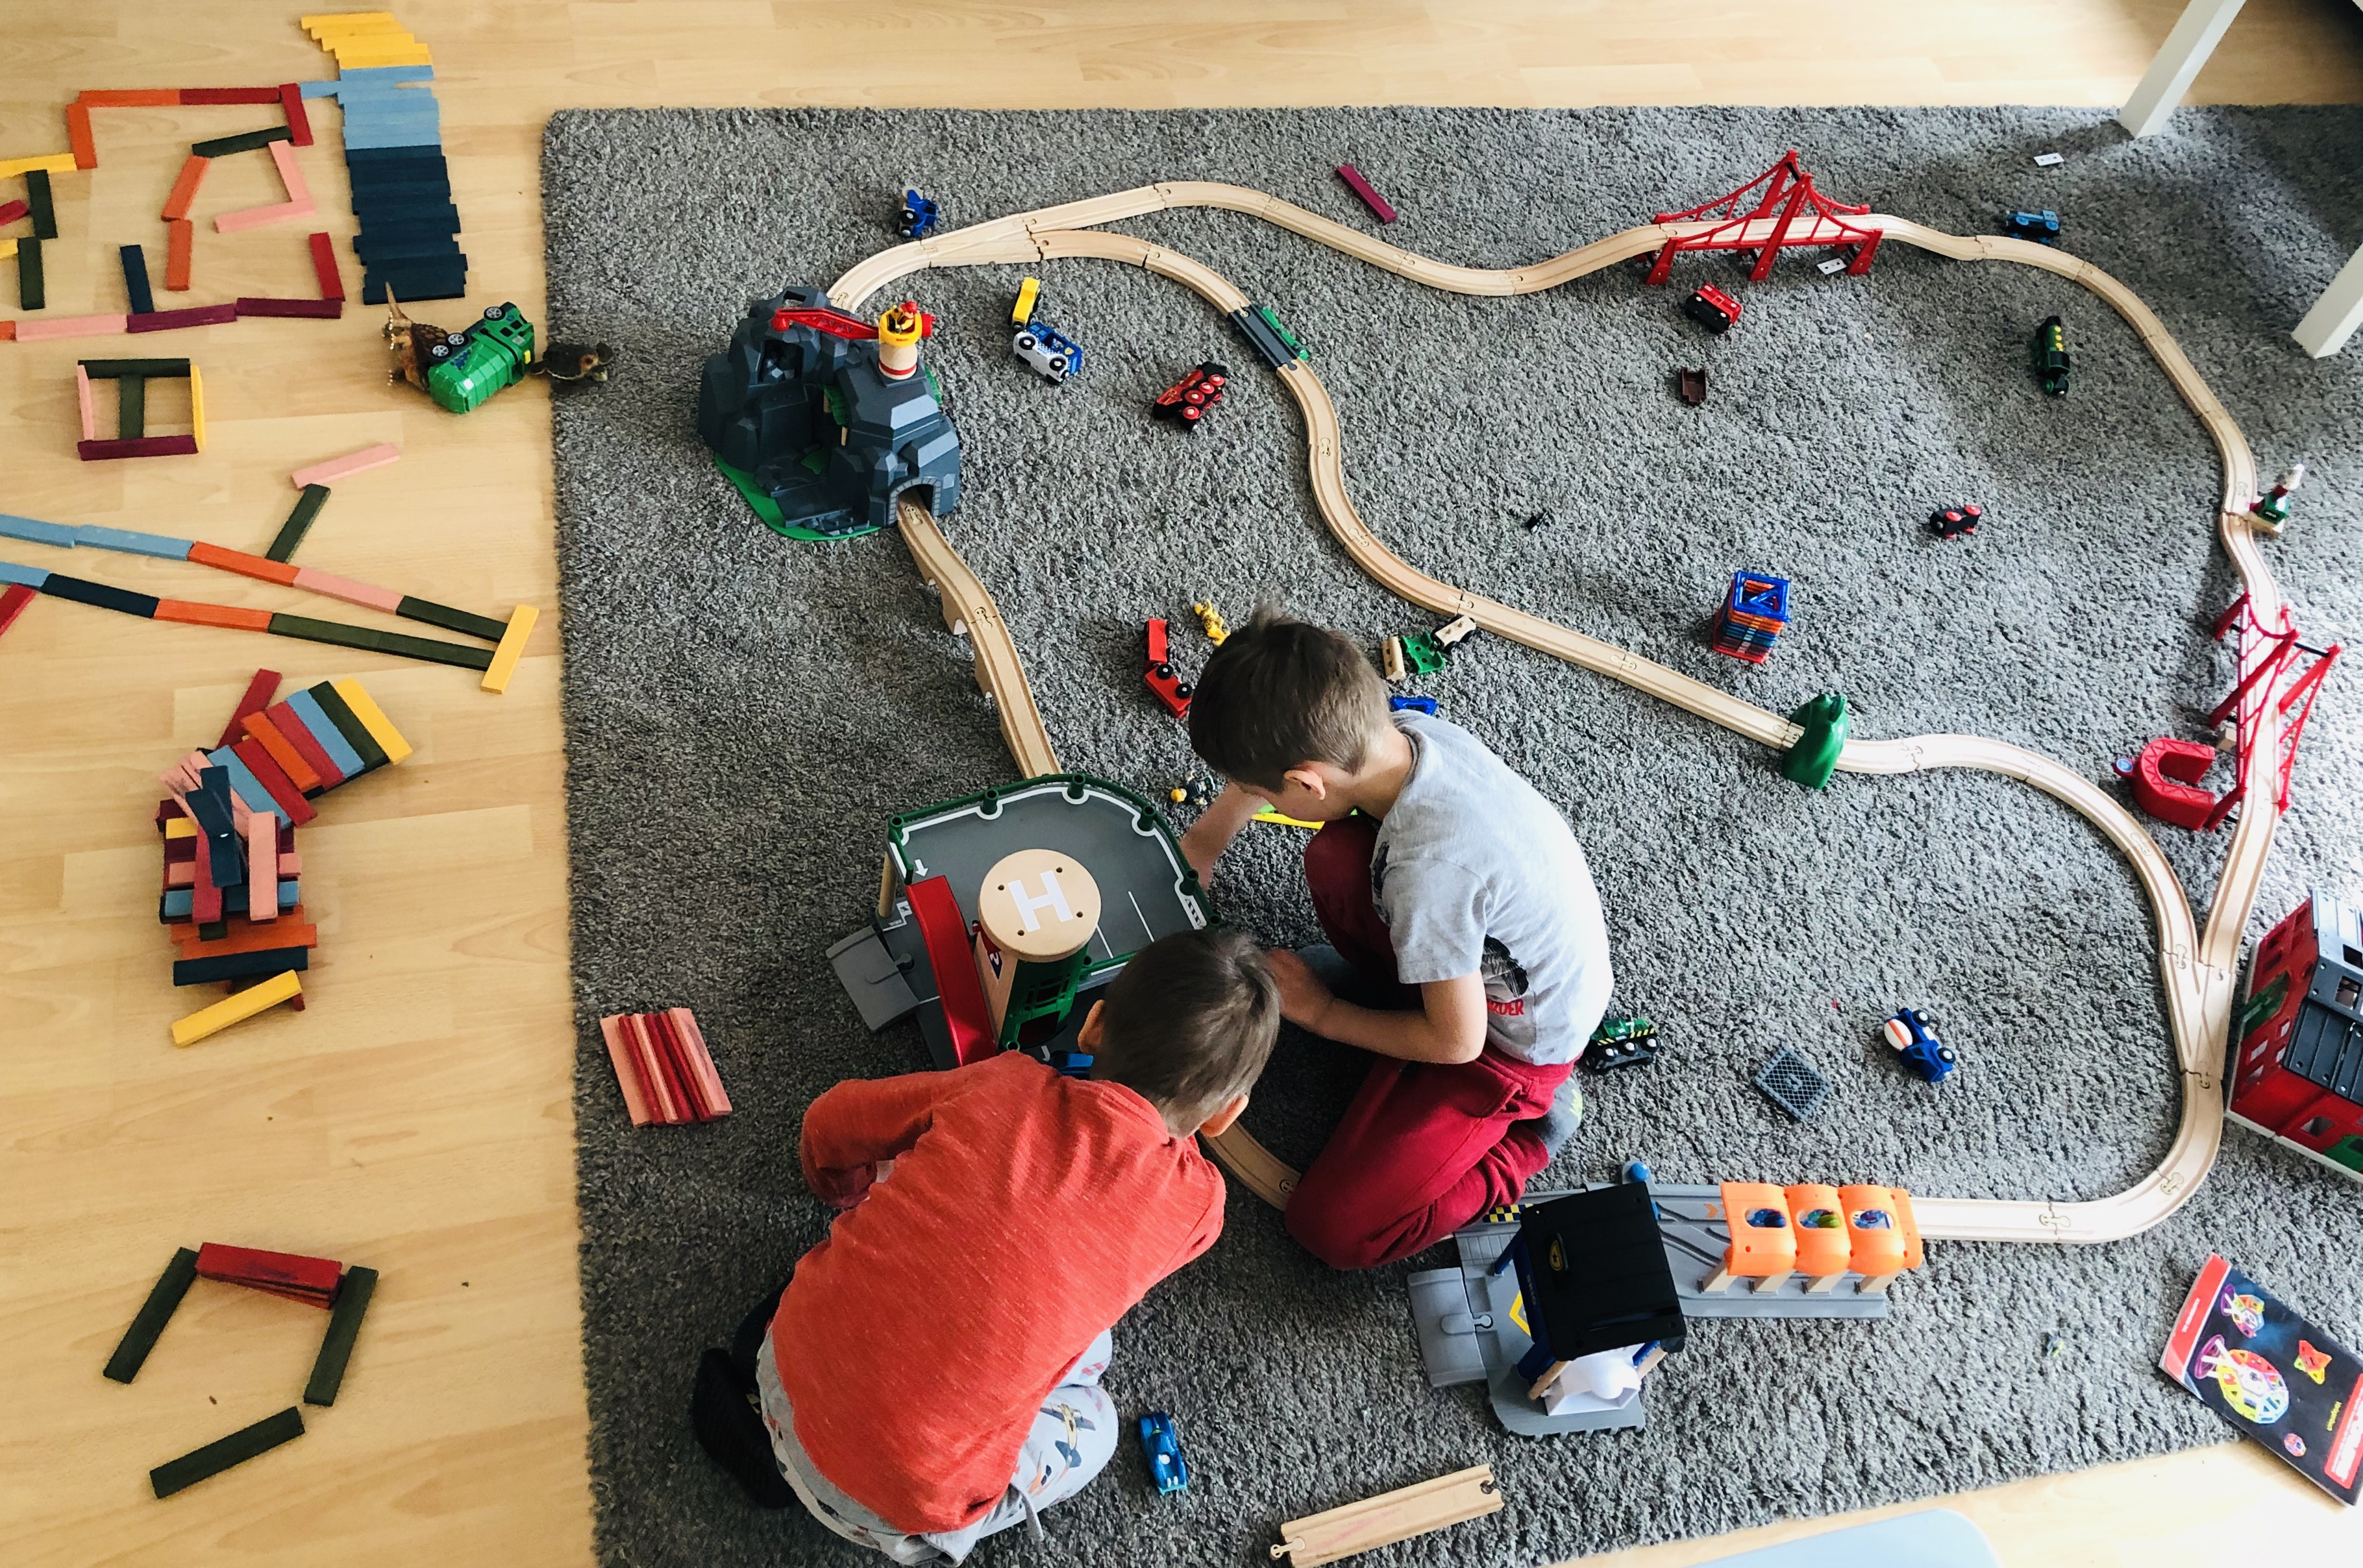 kids playing with many toys